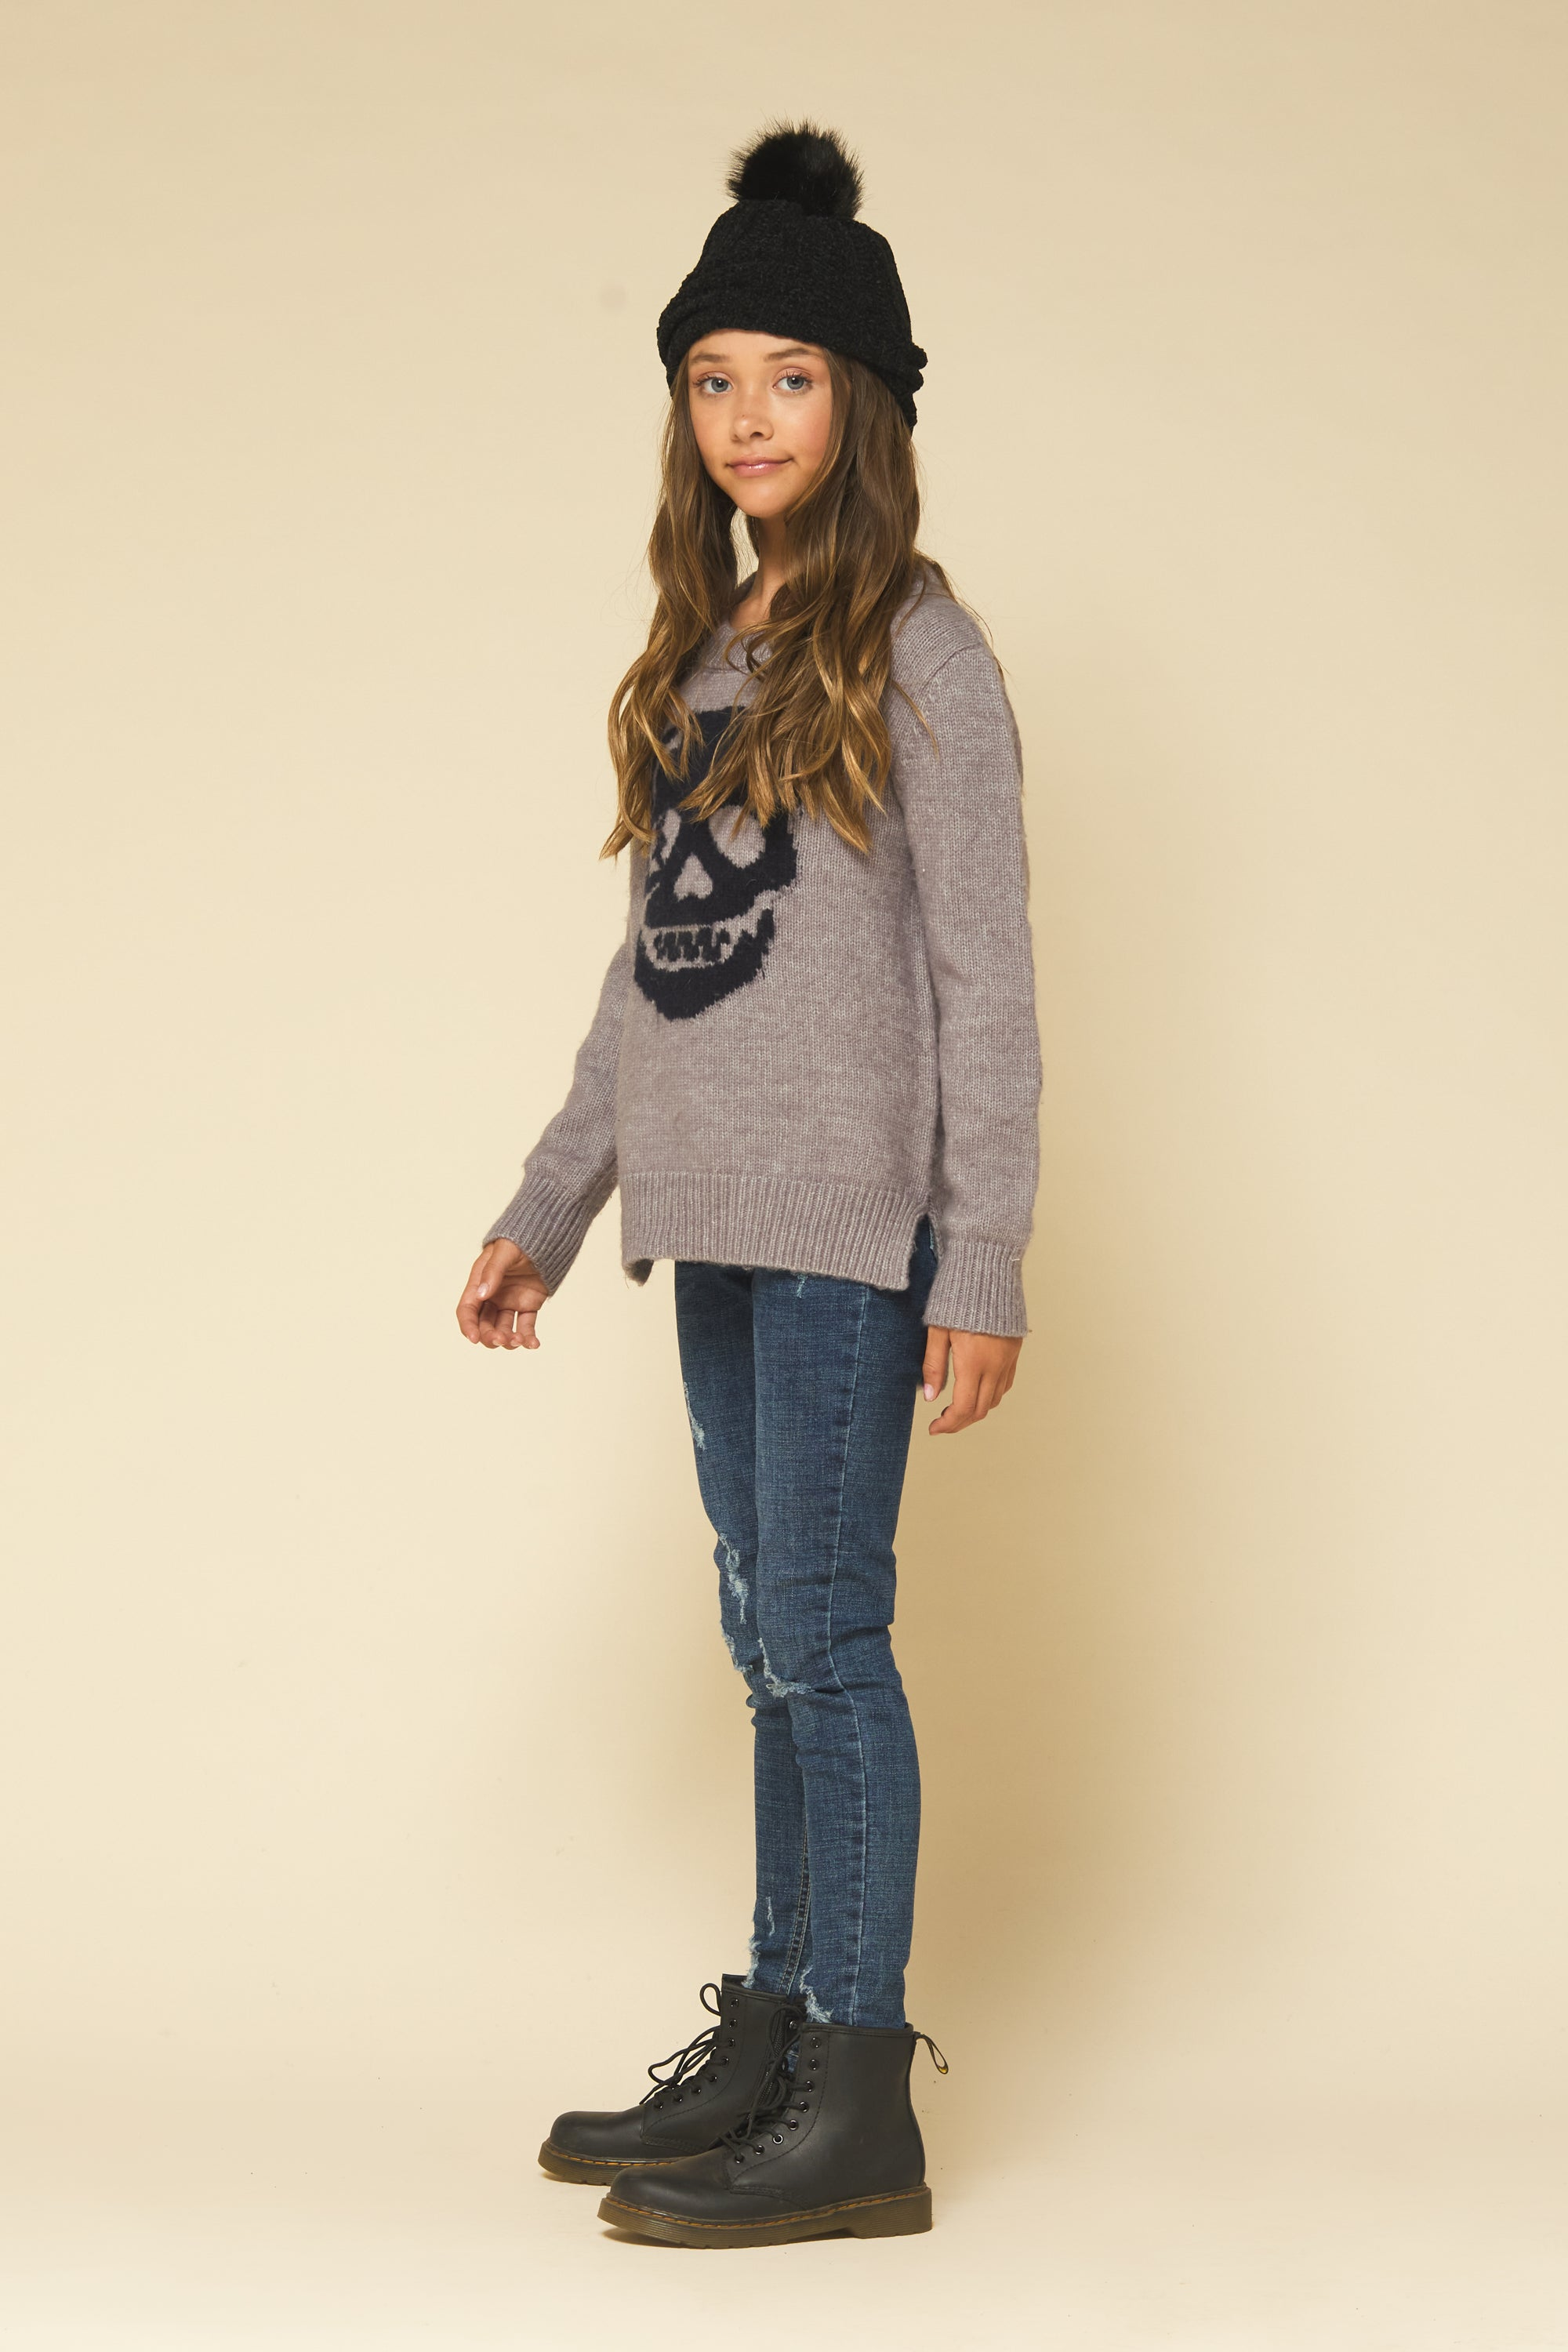 DUSTY LAVENDER/ GRY/ NAVY SKULL CREWNECK PULLOVER SWEATER